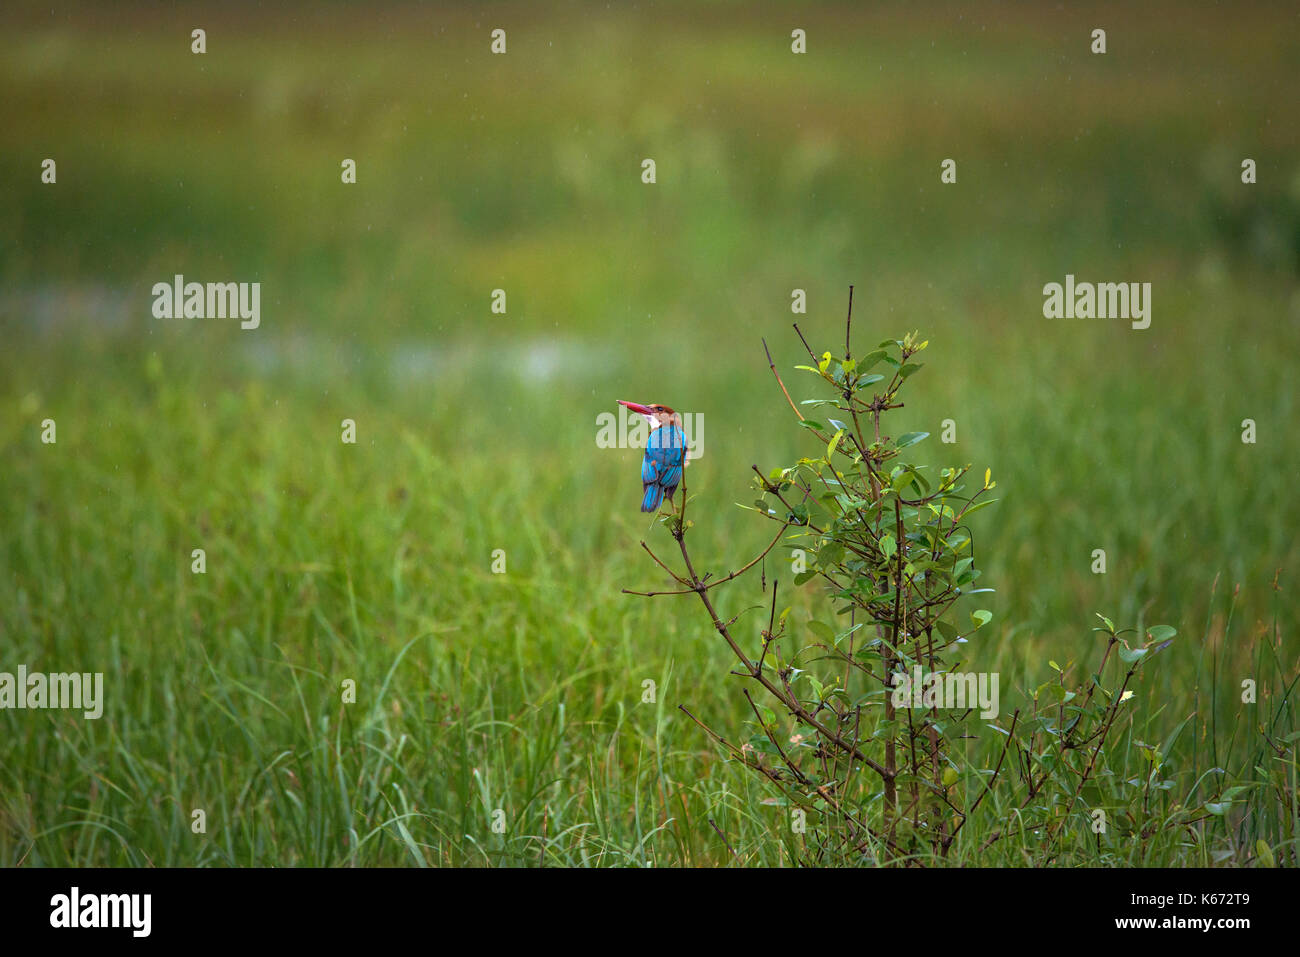 White throated kingfisher bird in rain in a paddy field - Stock Image